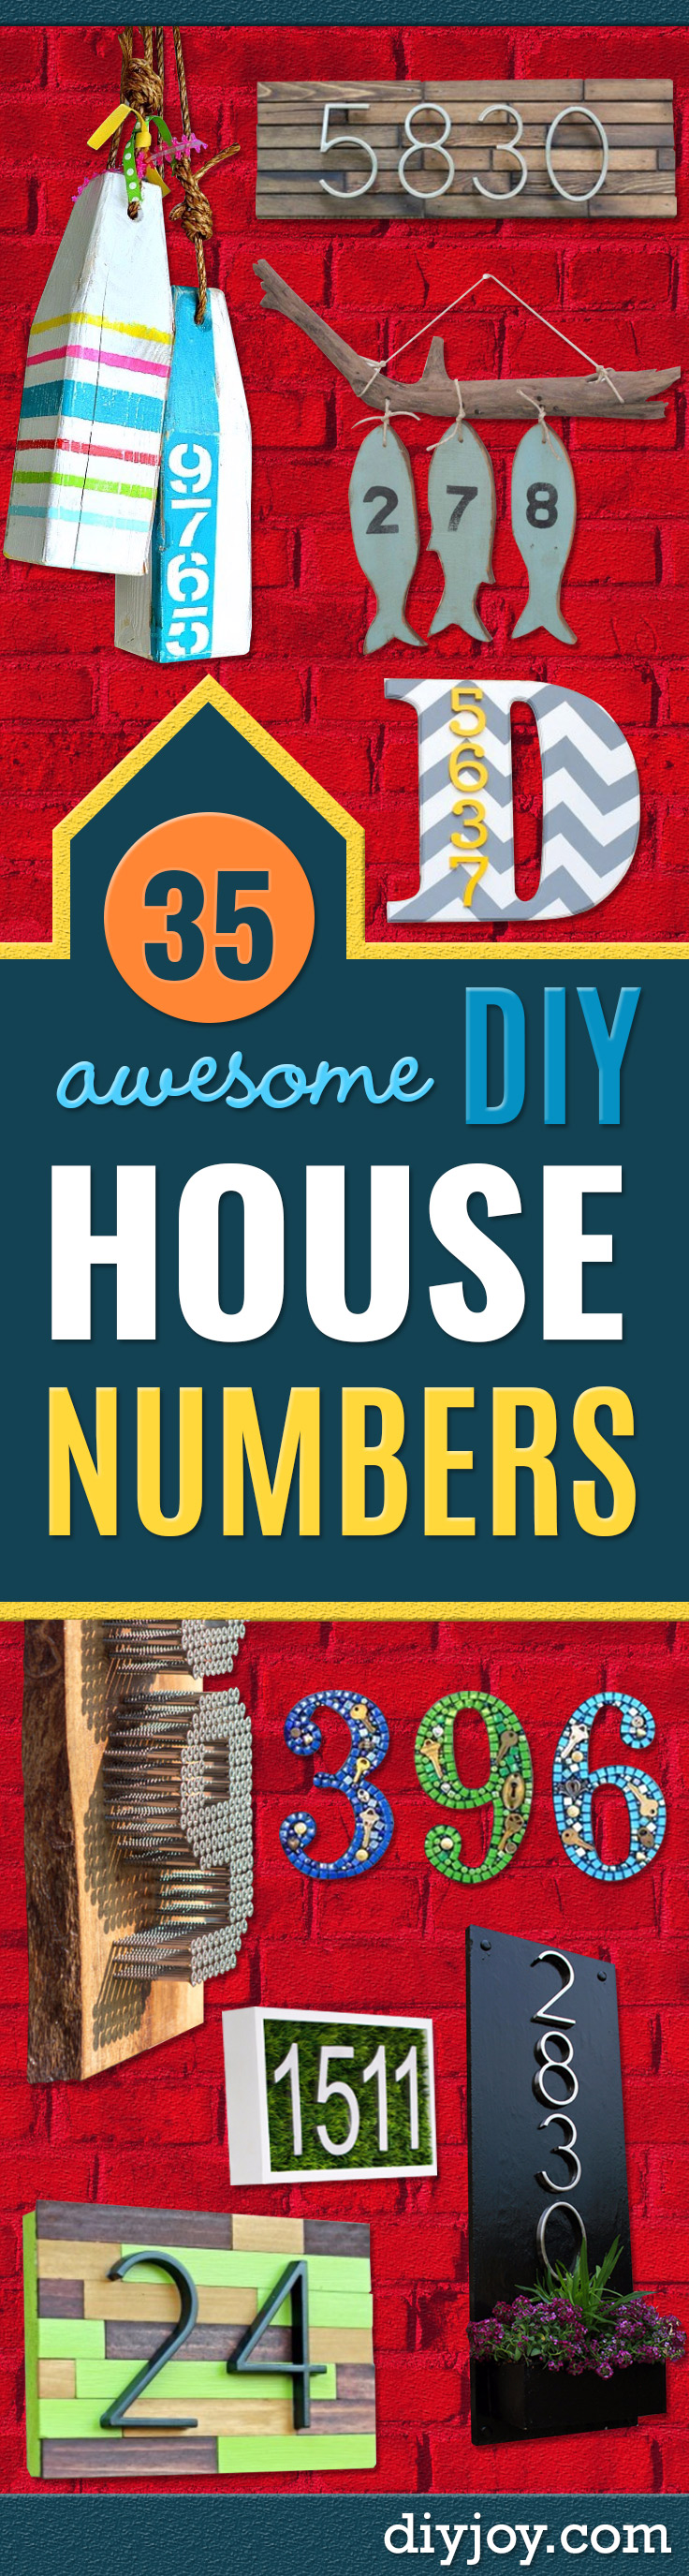 DIY House Numbers - DIY Numbers To Put In   Front Yard and At Front Door - Architectural Numbers and   Creative Do It Yourself Projects for Making House Numbers - Easy   Step by Step Tutorials and Project Ideas for Home Improvement on   A Budget http://diyjoy.com/diy-house-numbers